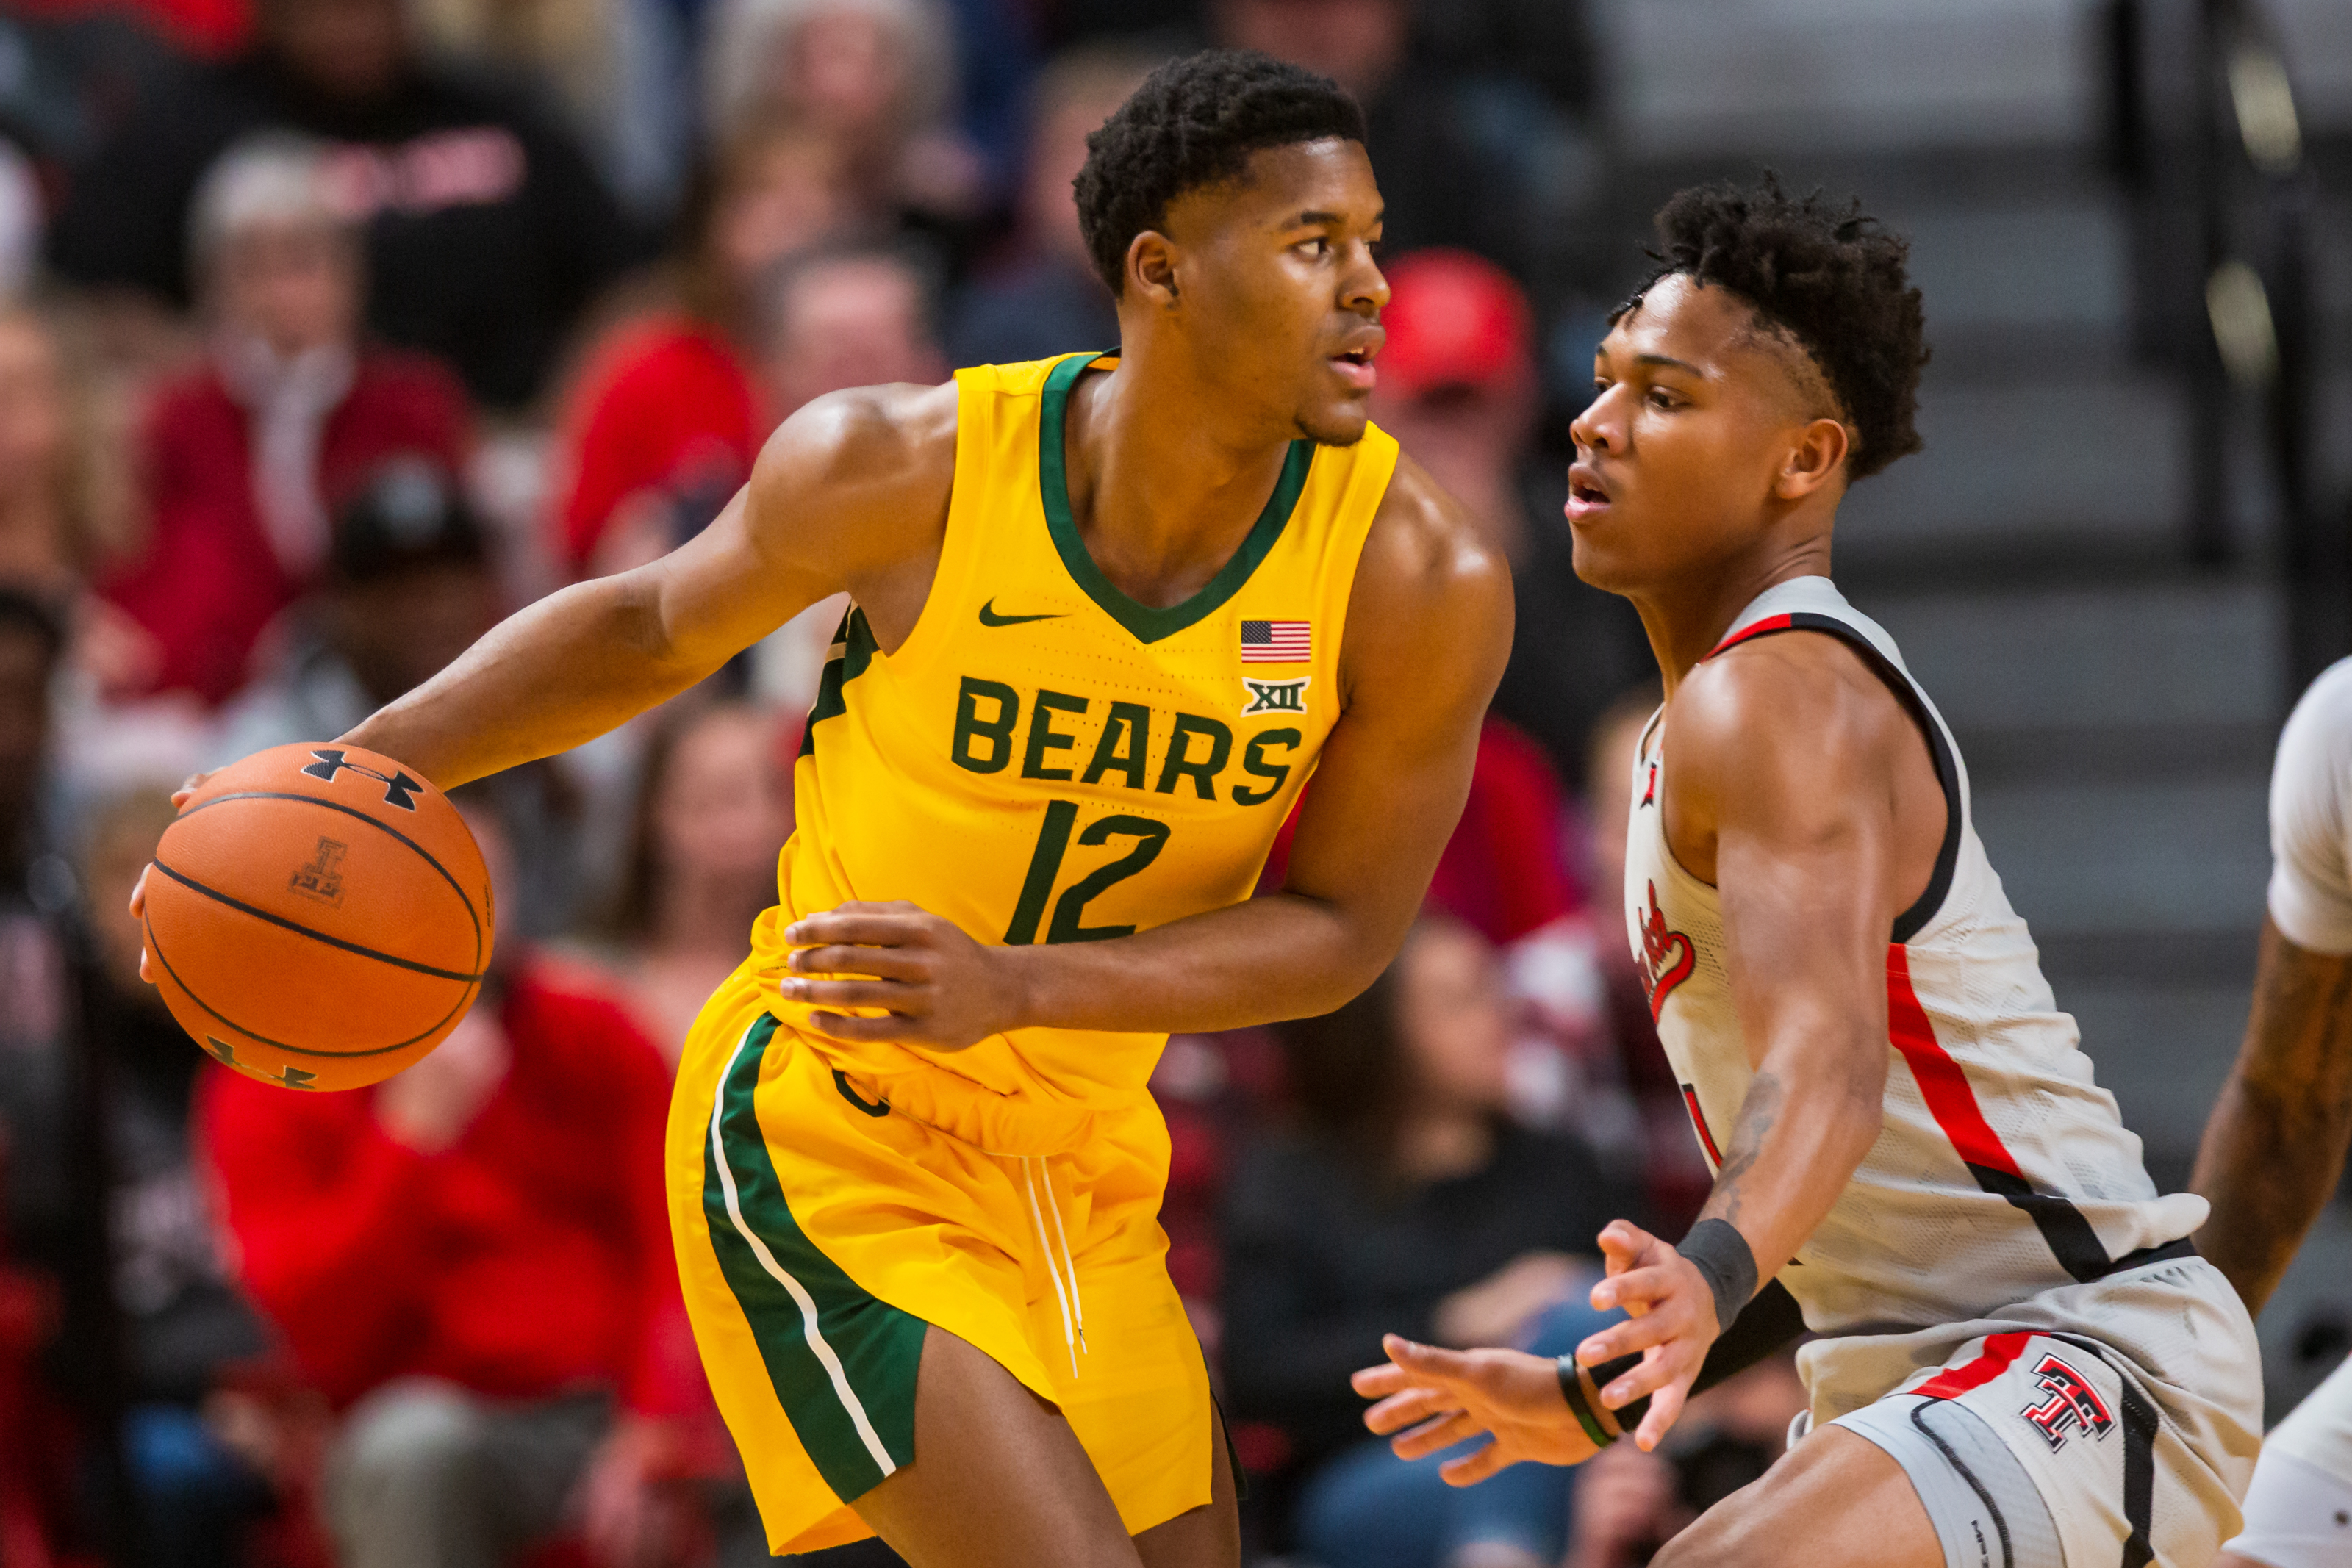 Baylor vs. Kansas State: 2019-20 college basketball game preview, TV schedule